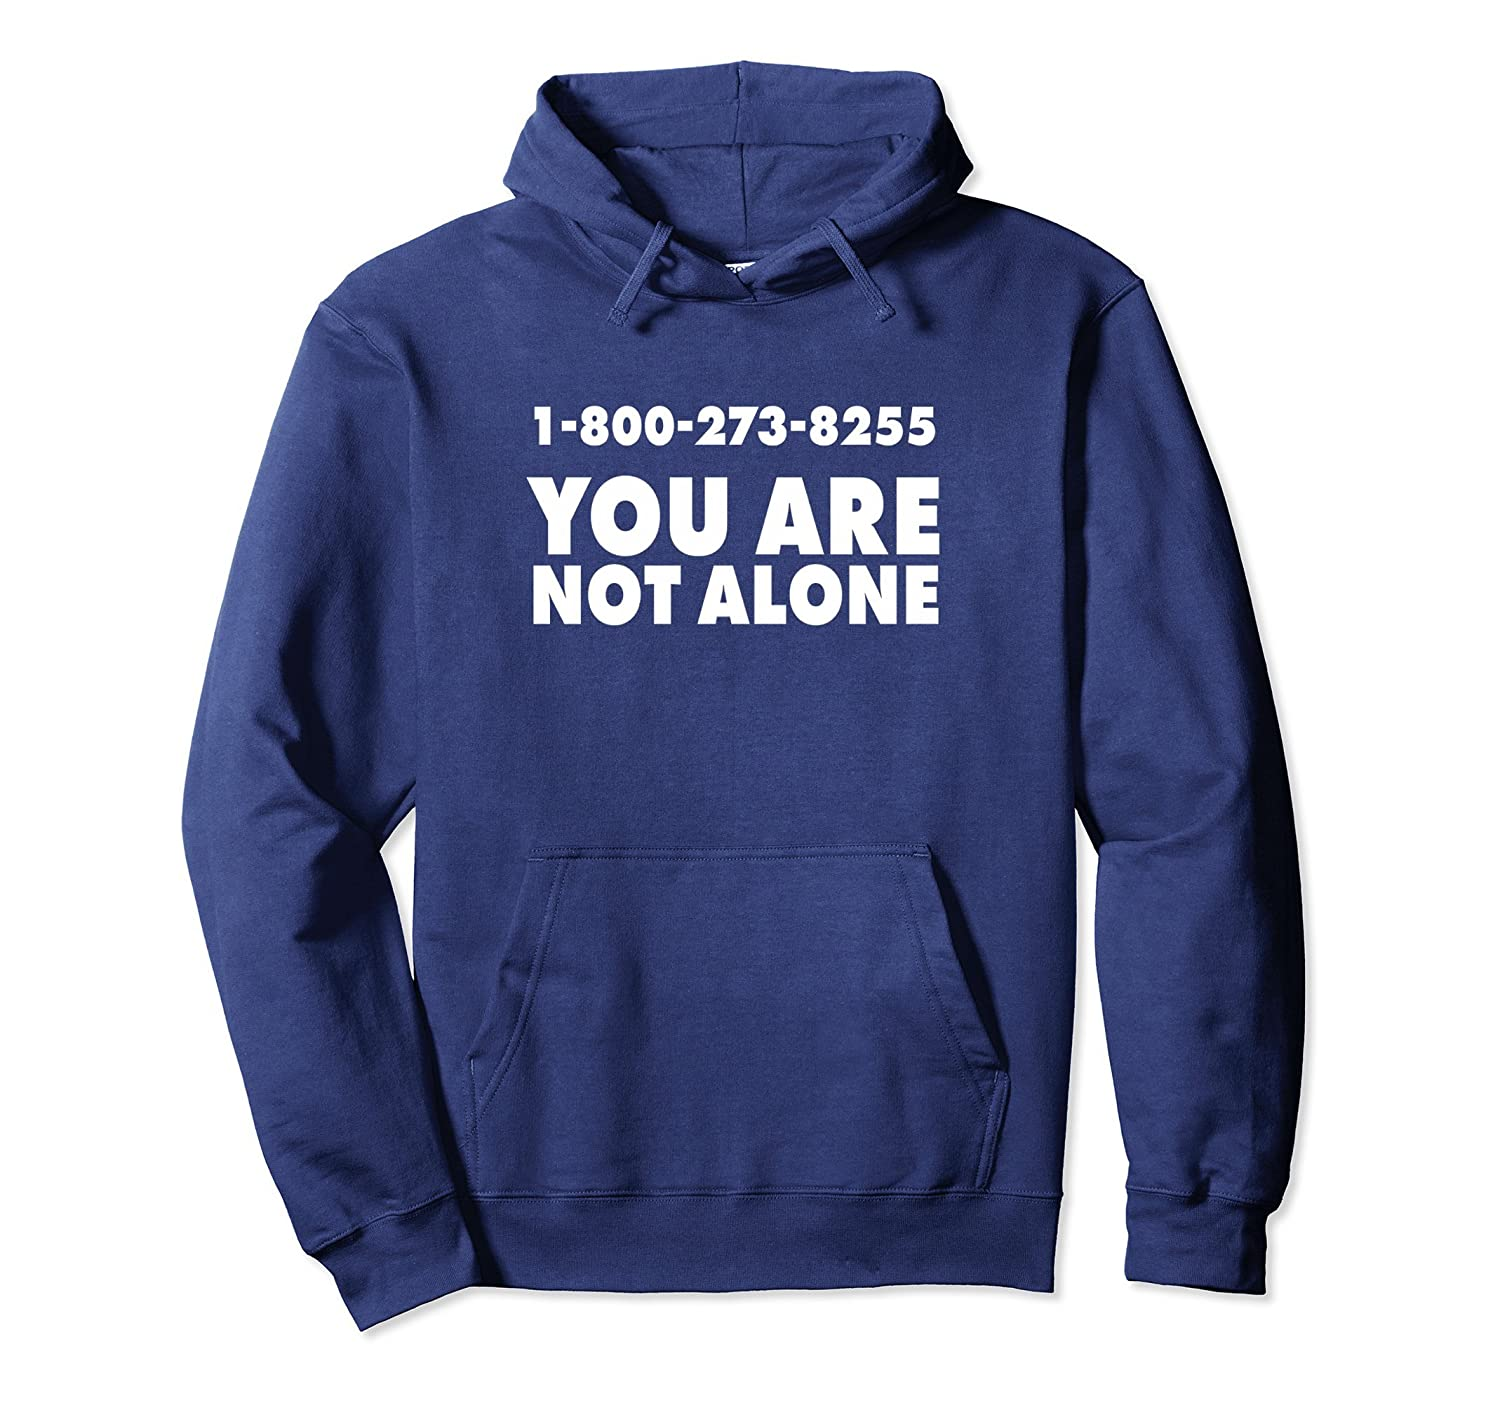 1-800-273-8255 You are not Alone Graphic Pullover Hoodie-TH